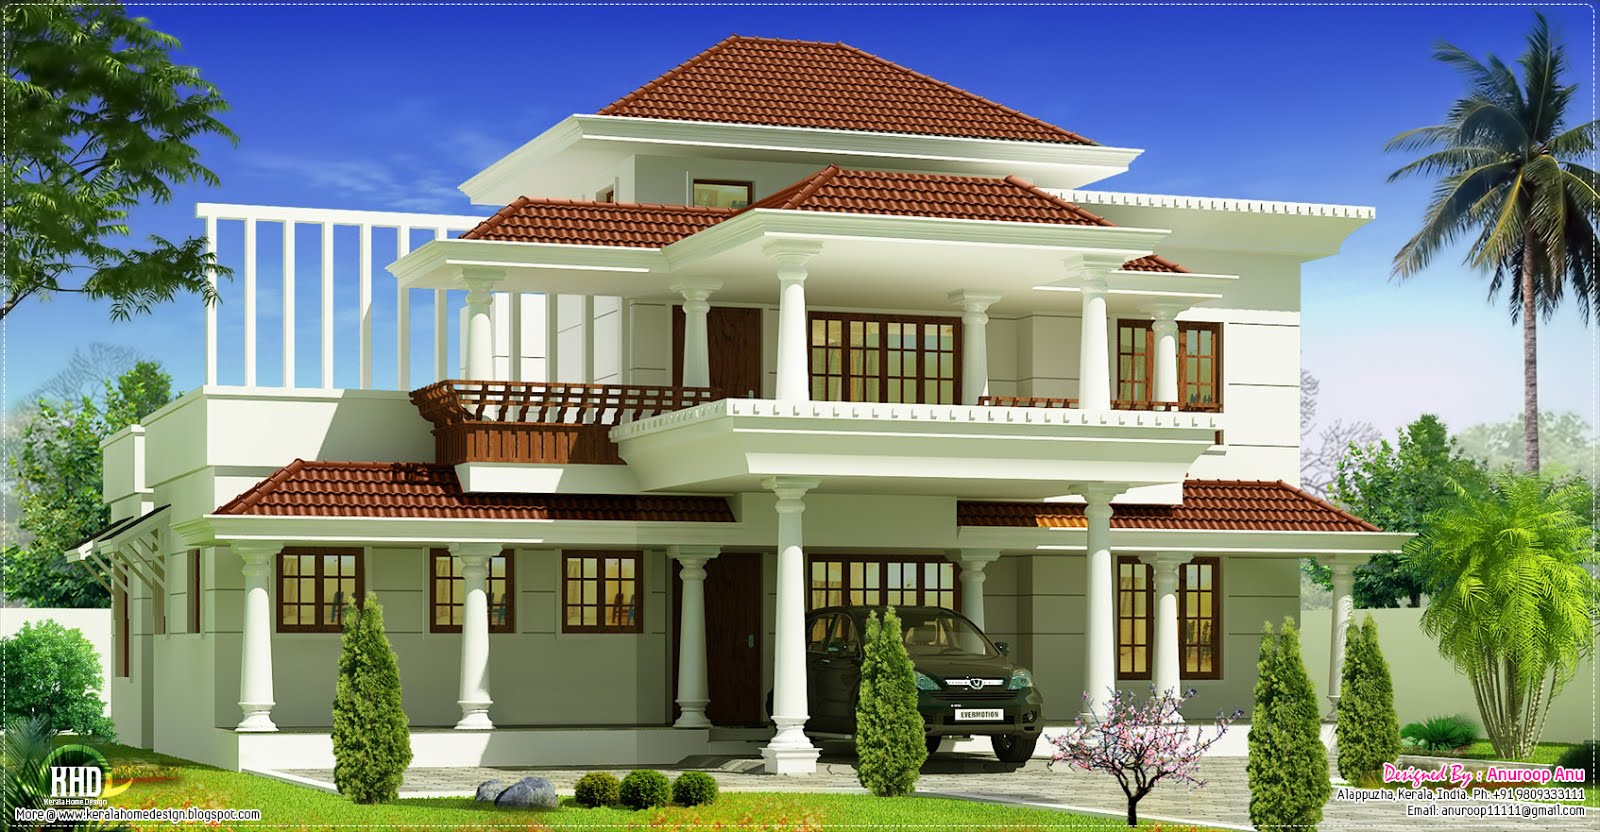 Beautiful traditional mix Kerala villa design in 1700 sq.feet